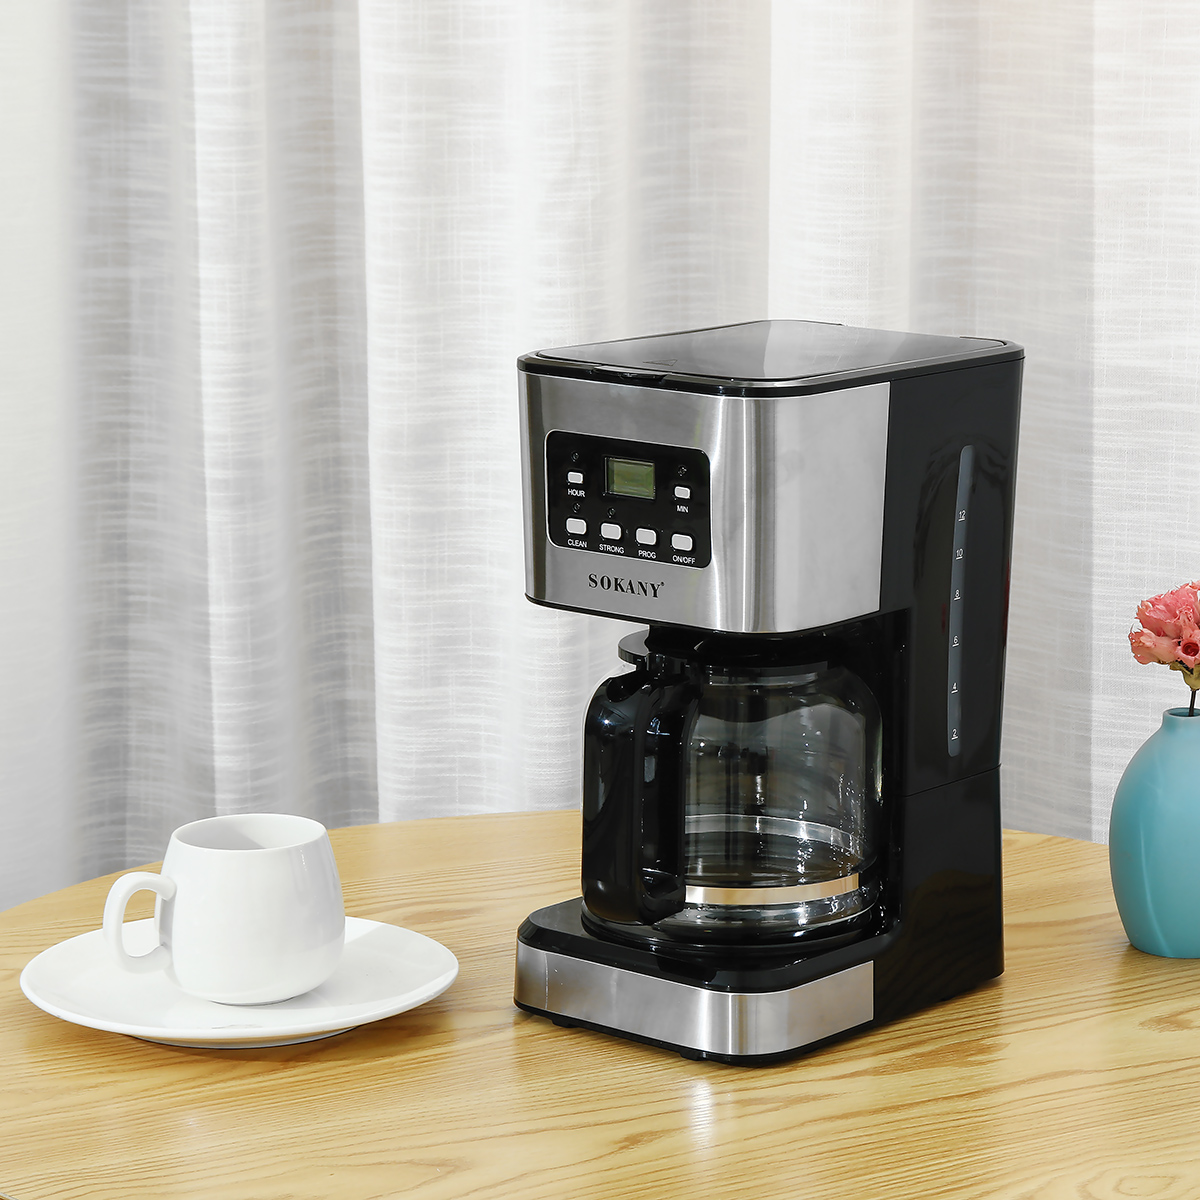 220V Coffee Maker 12 Cups 1.5L Semi-Automatic Espresso Making Machine Stainless Steel 16